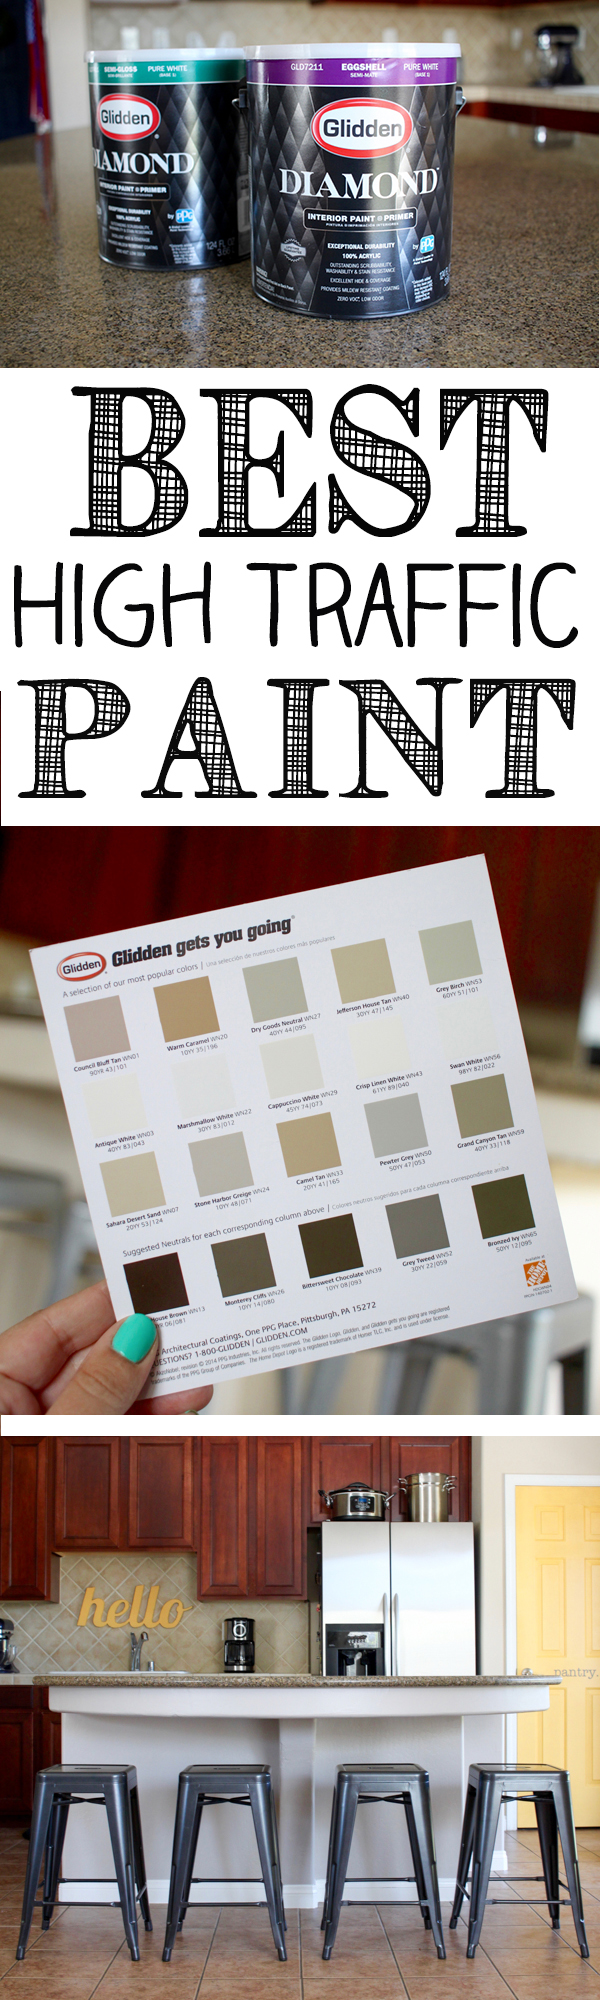 Our Kitchen Island Update And Glidden Diamond Paint Primer Giveaway